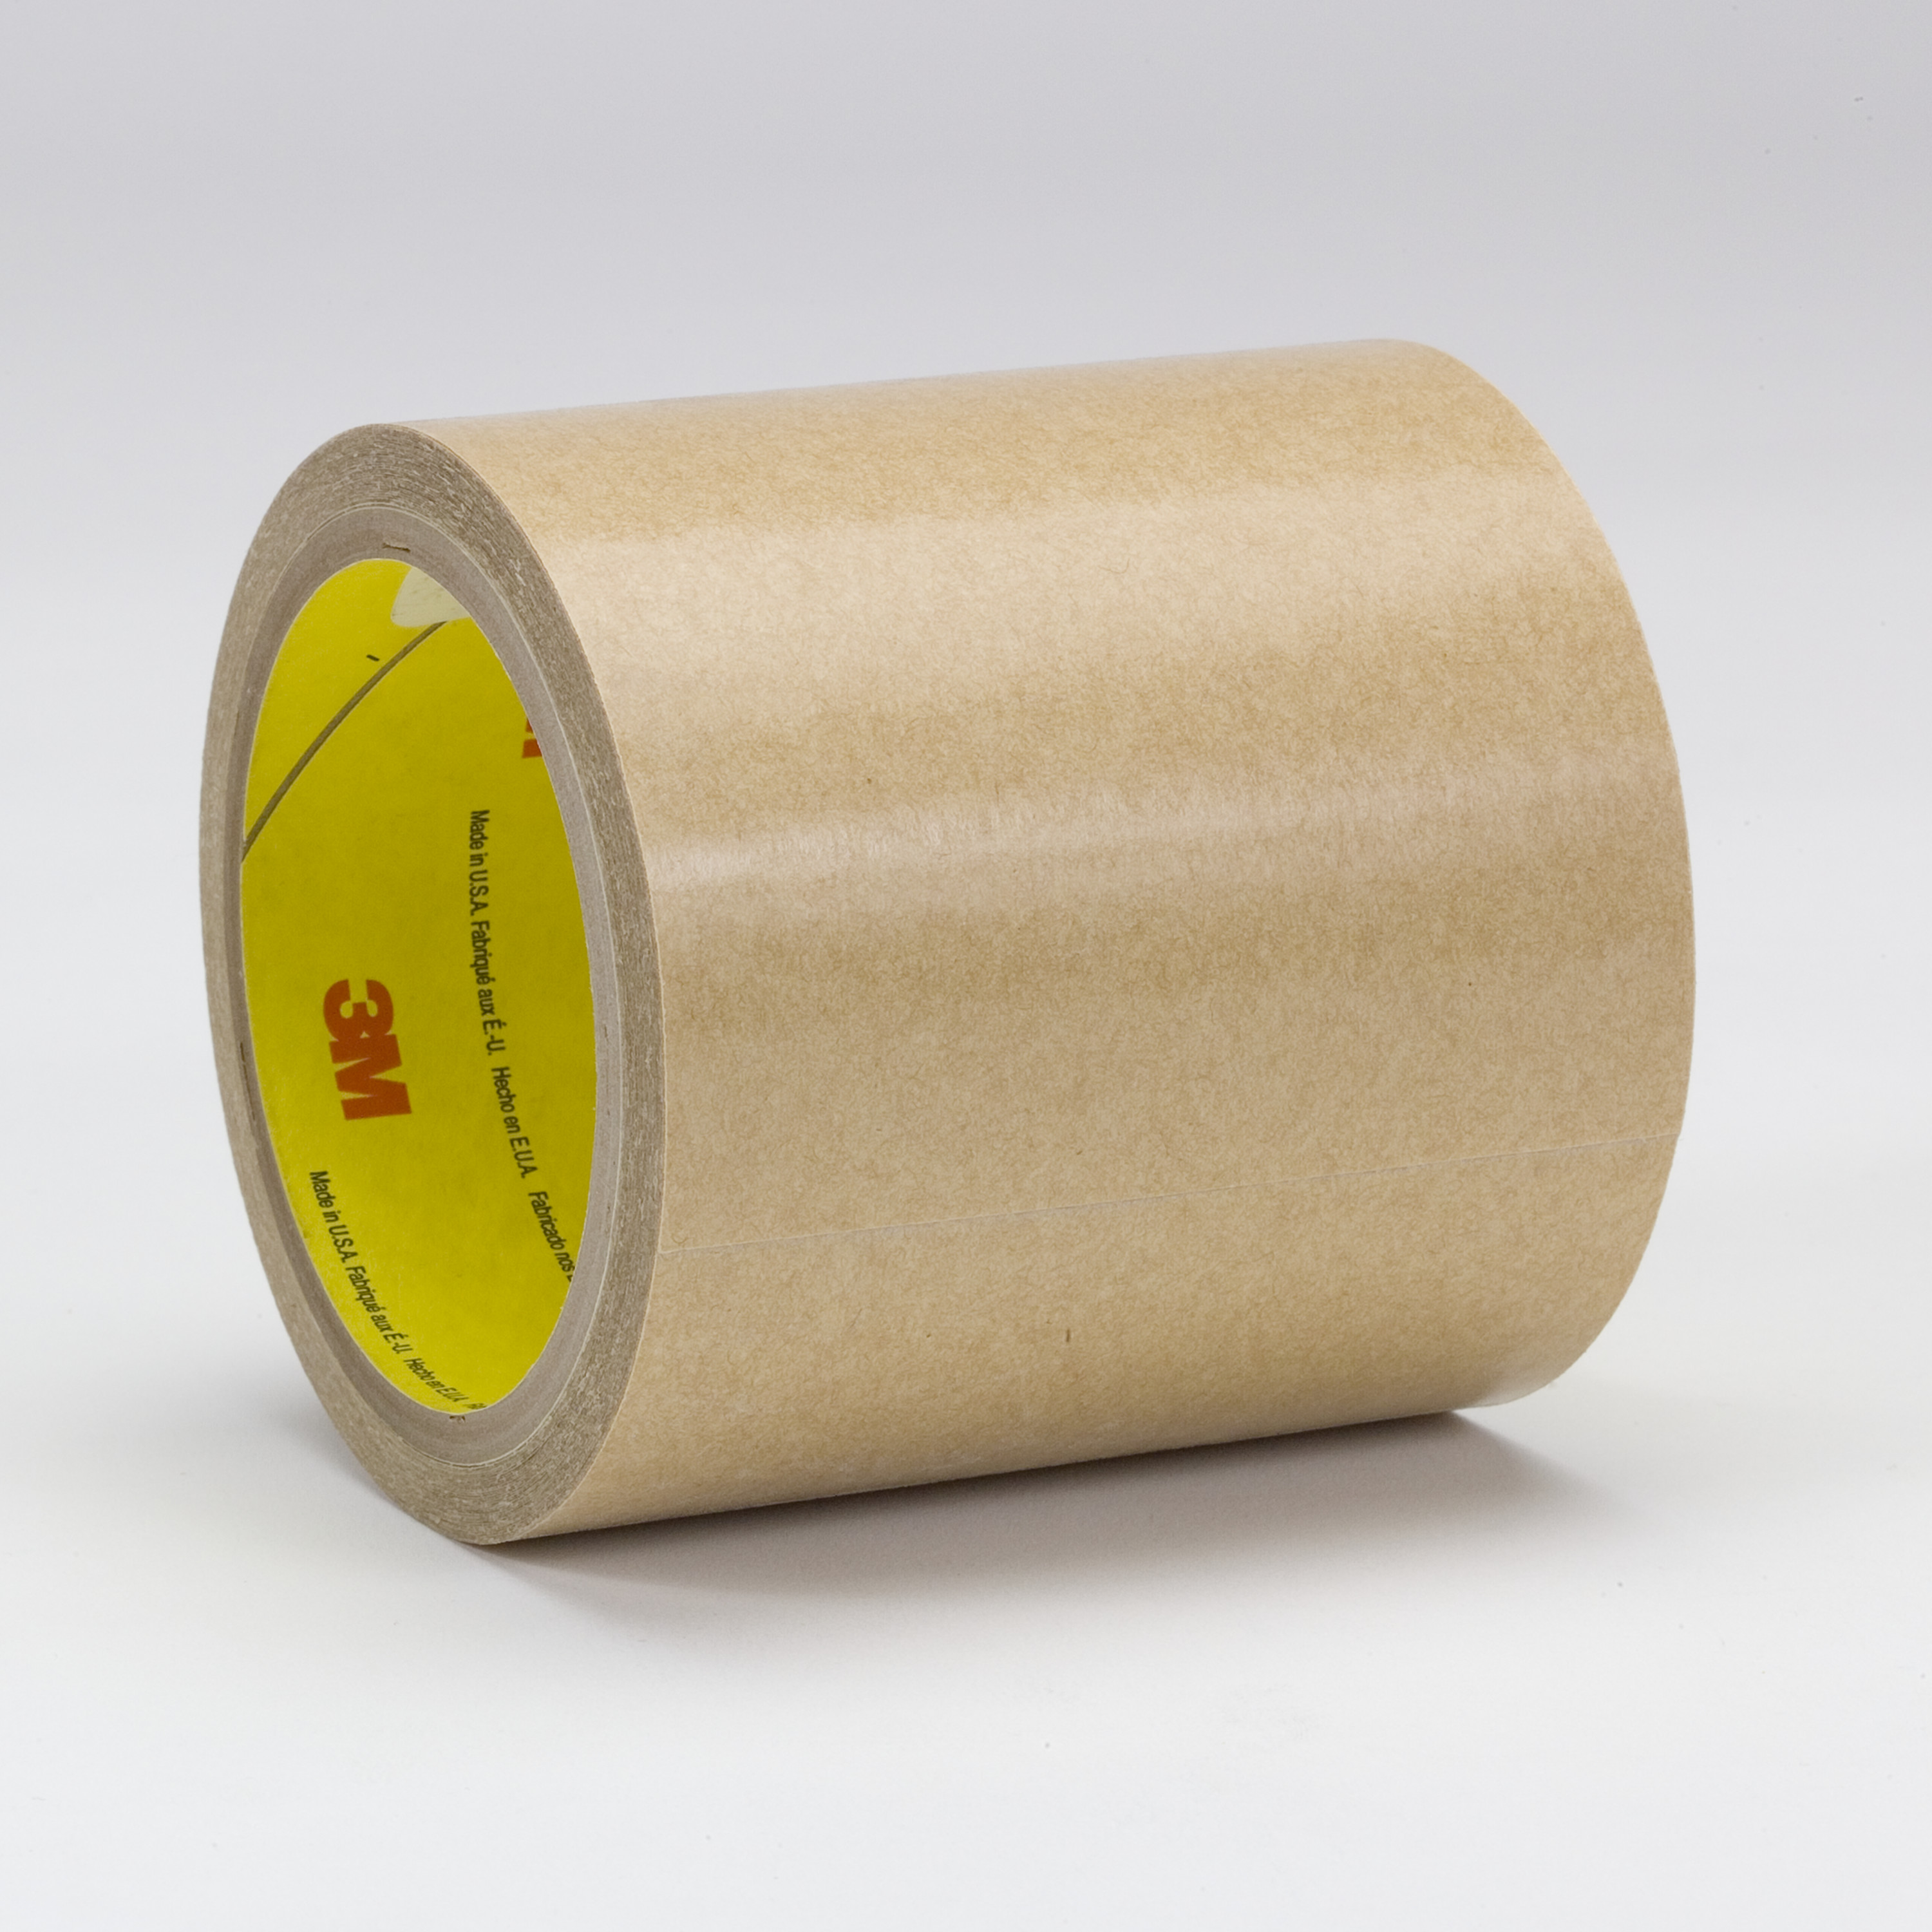 3M™ Adhesive Transfer Tape 950EK, Clear, 5 mil, Roll, Config